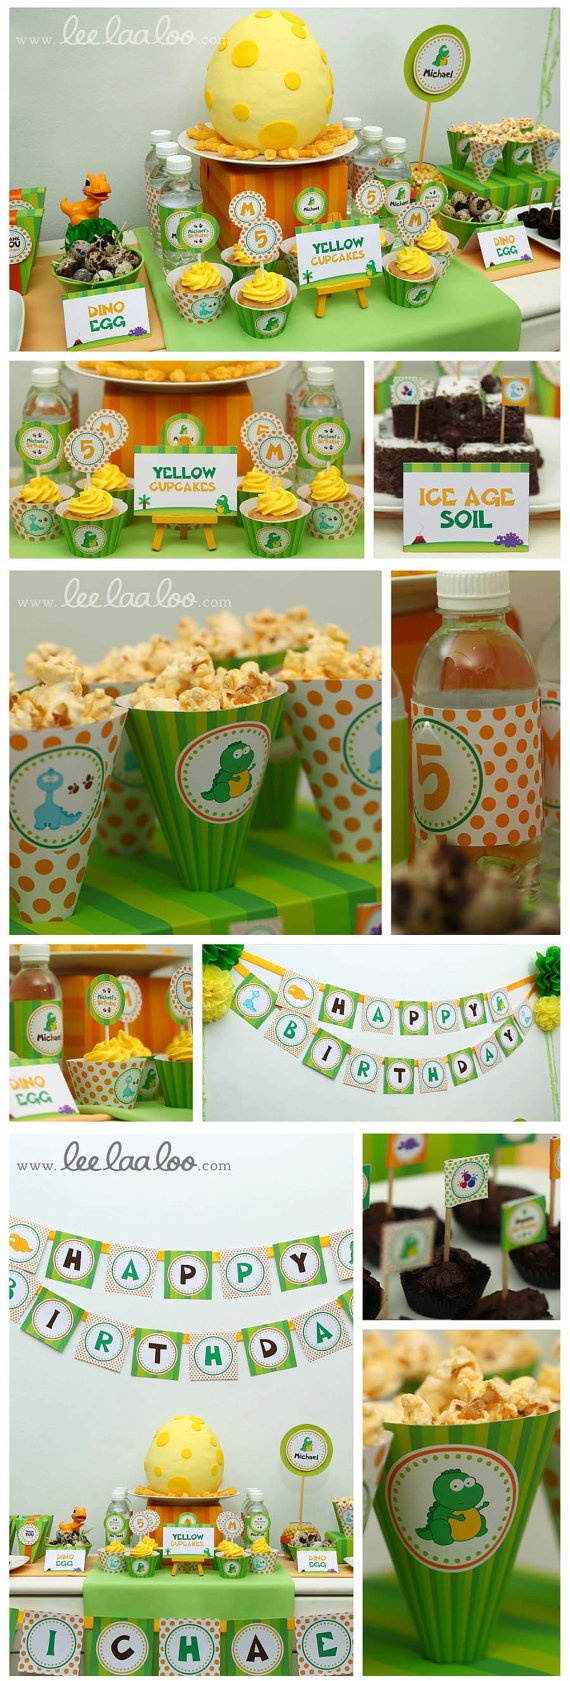 Dino Dinosaur Birthday Party Package Personalized by leelaaloo, $29.00